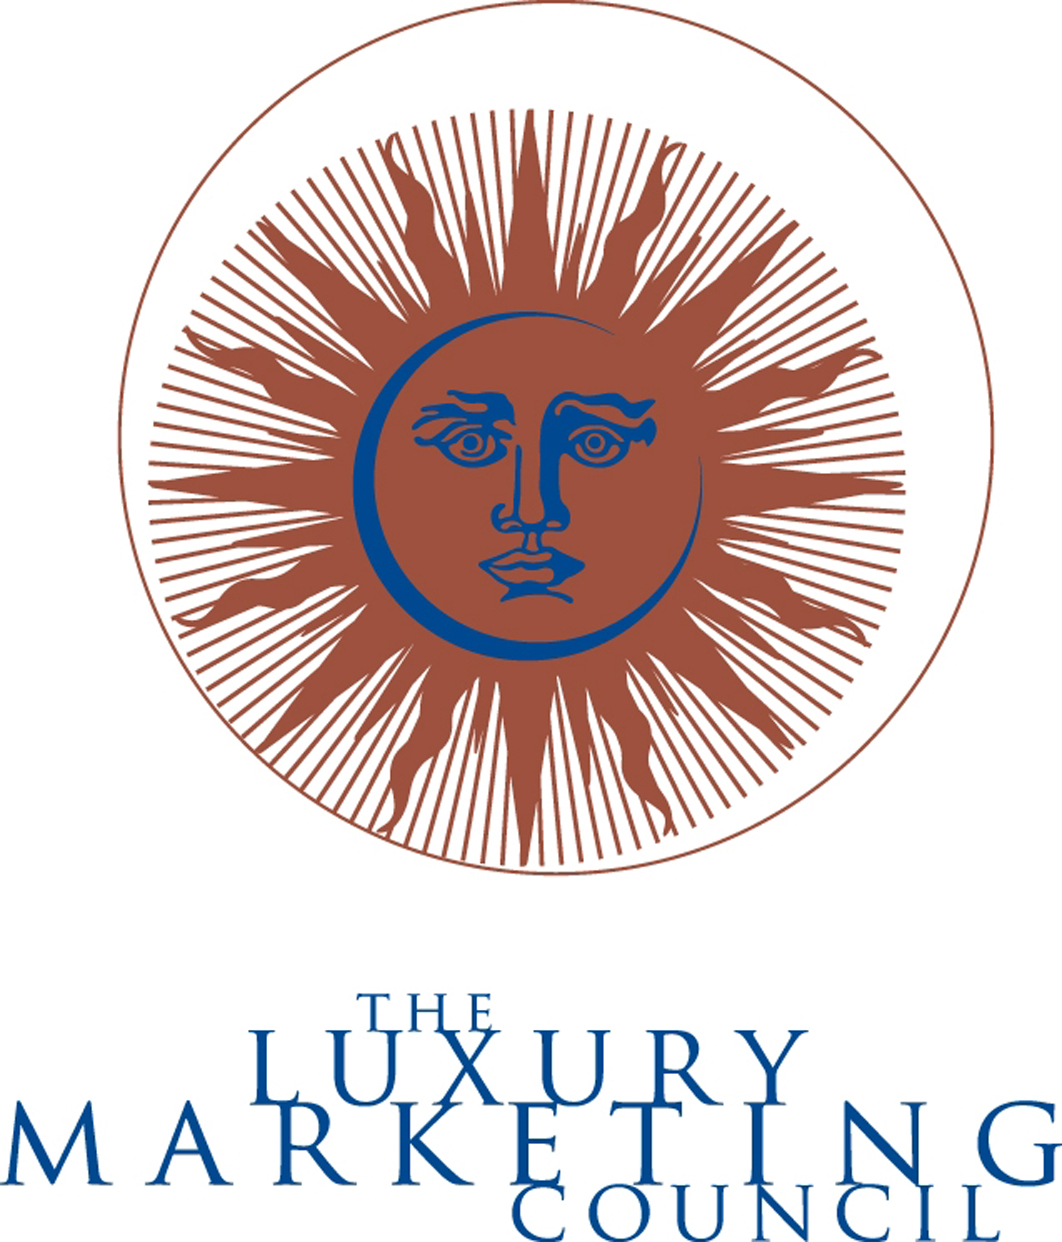 The Luxury Marketing Council